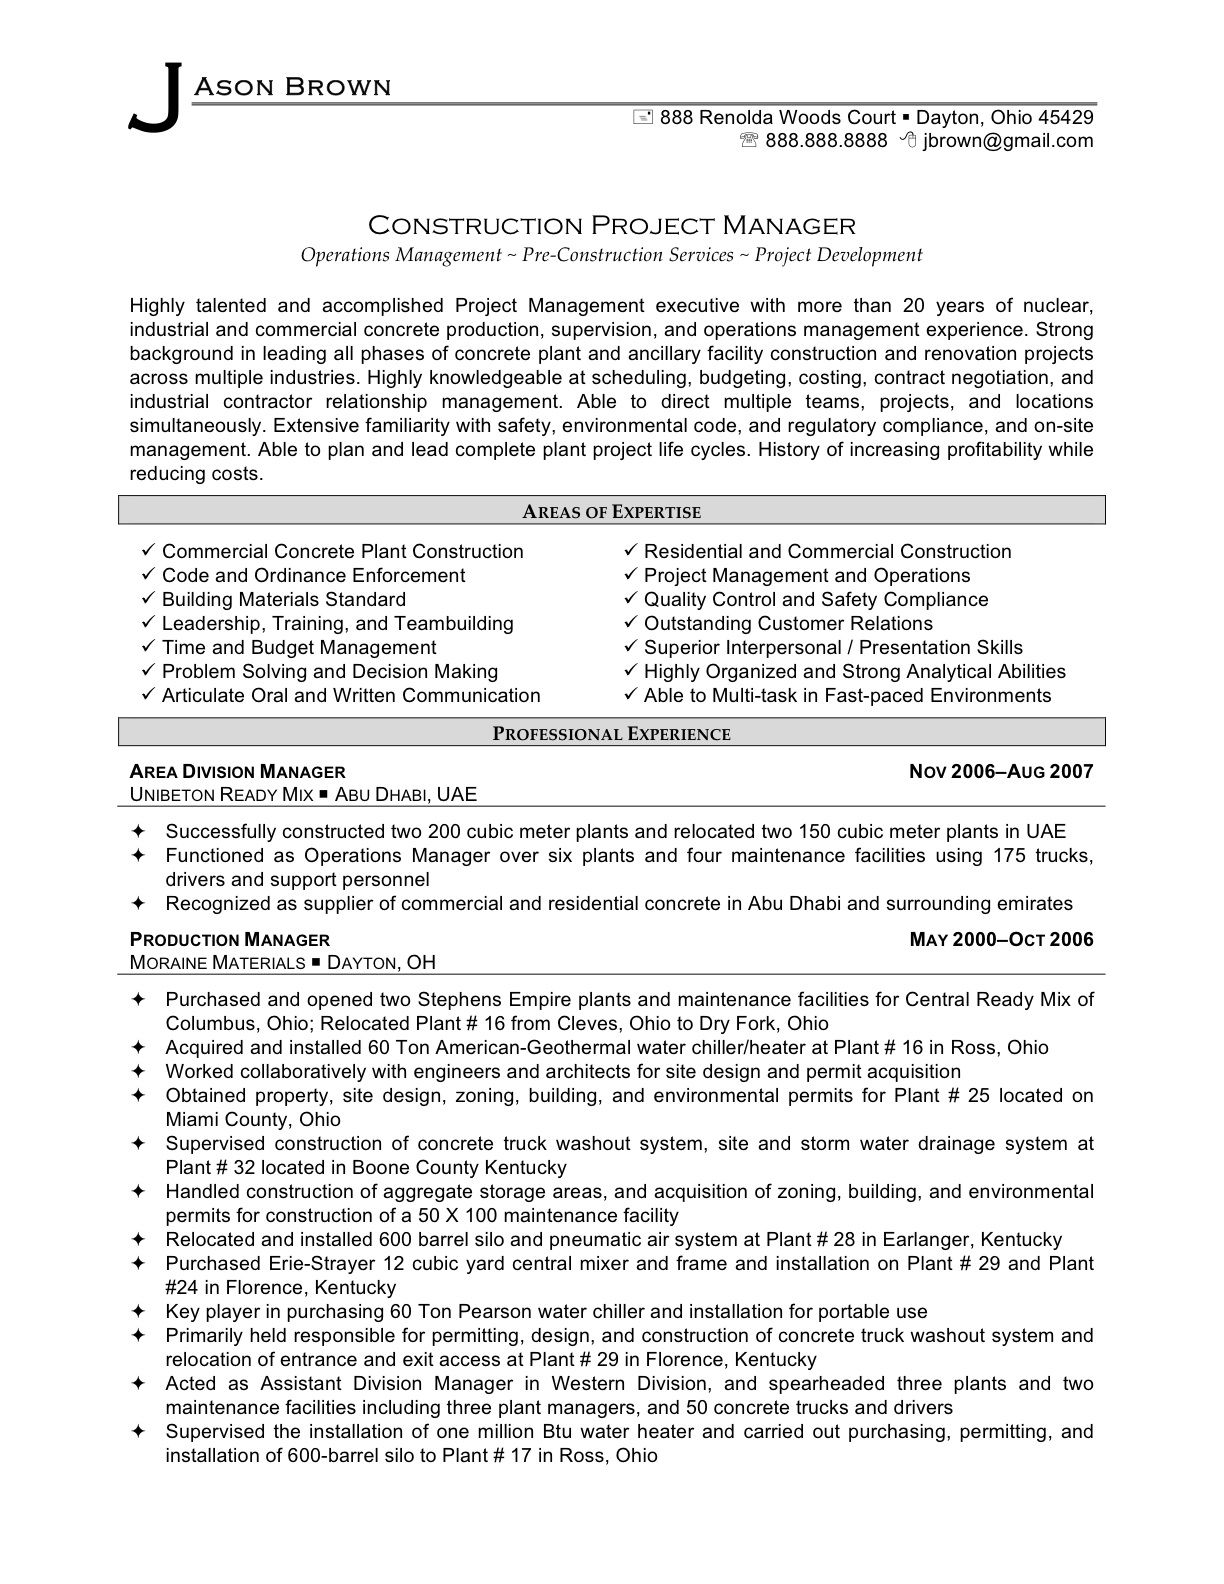 Resume Templates Project Manager | Residential Or Commercial